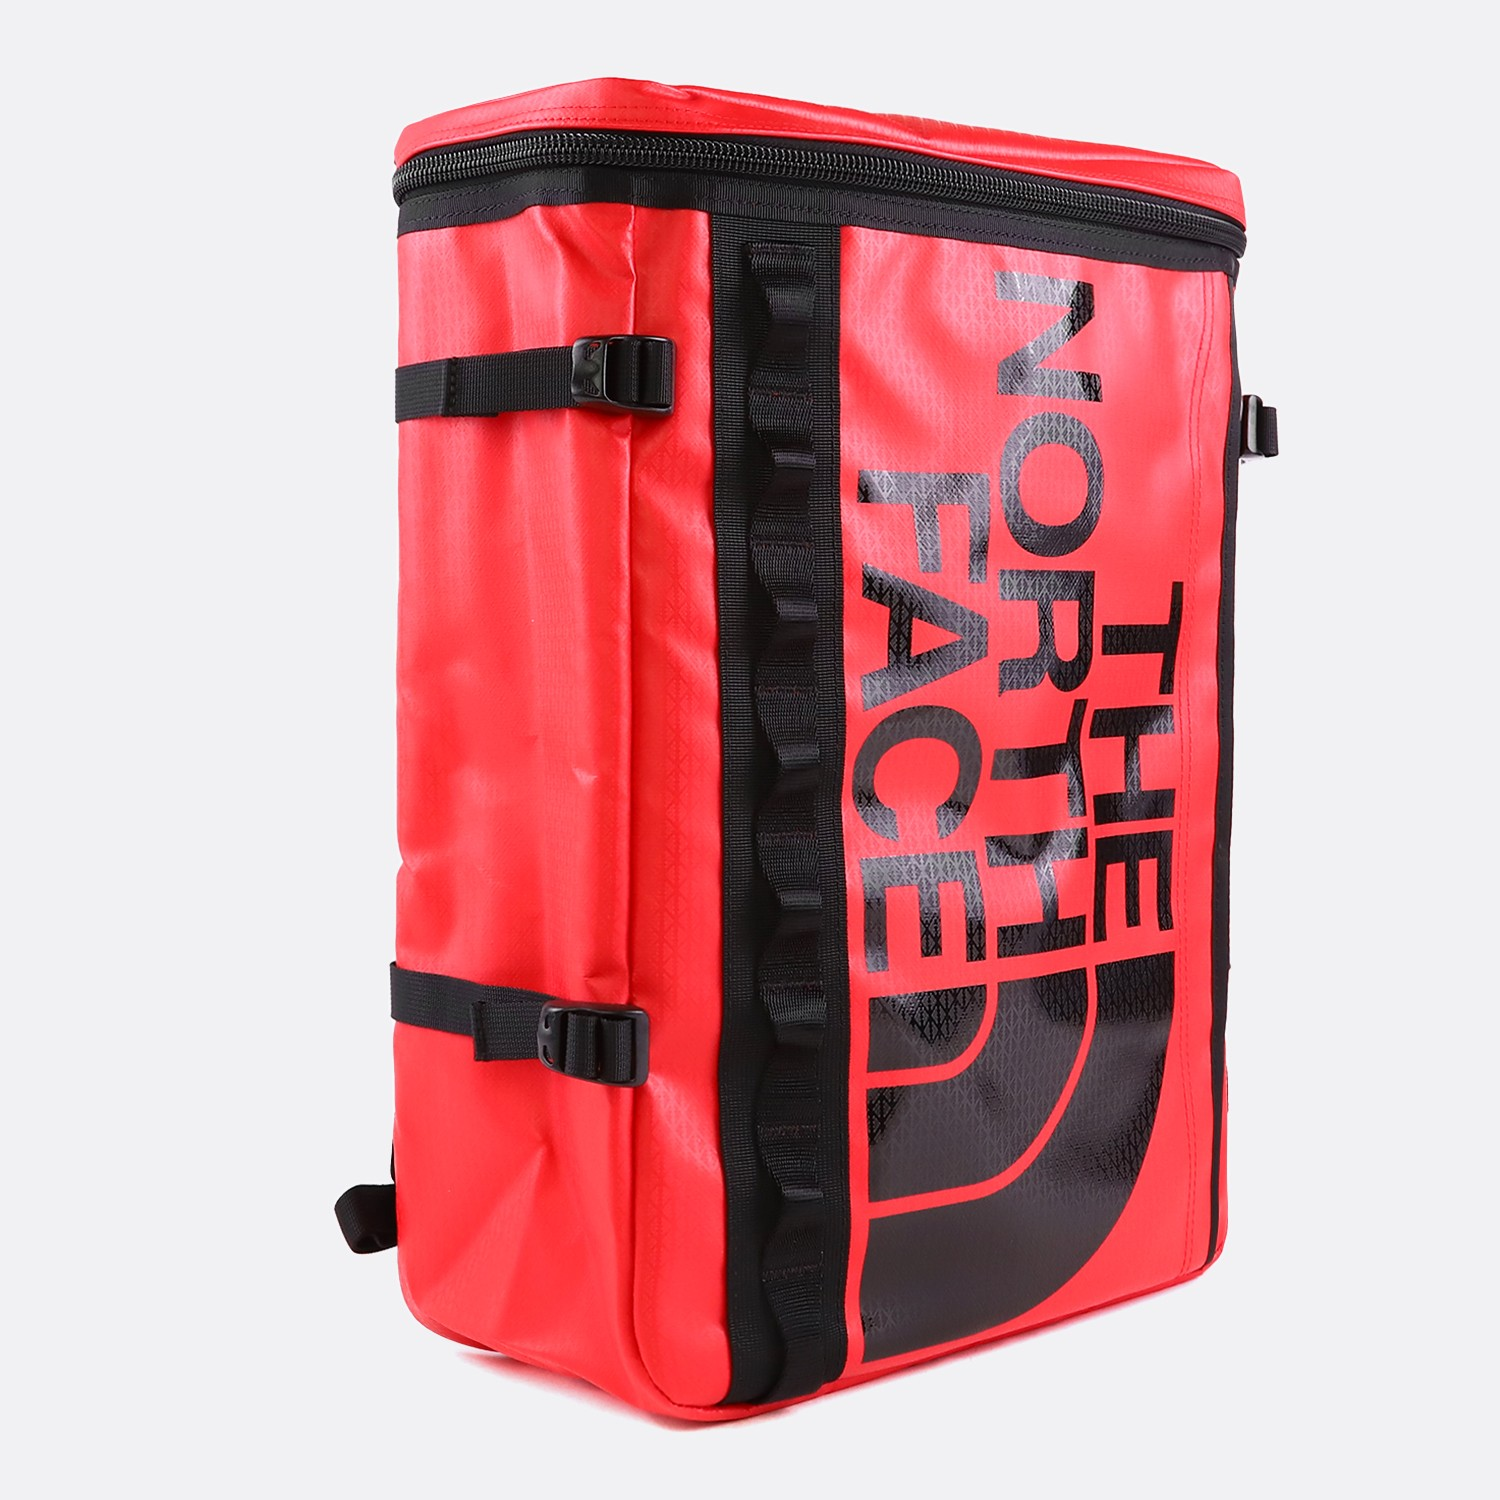 BASE CAMP FUSE BOX TNF RED. 130 €